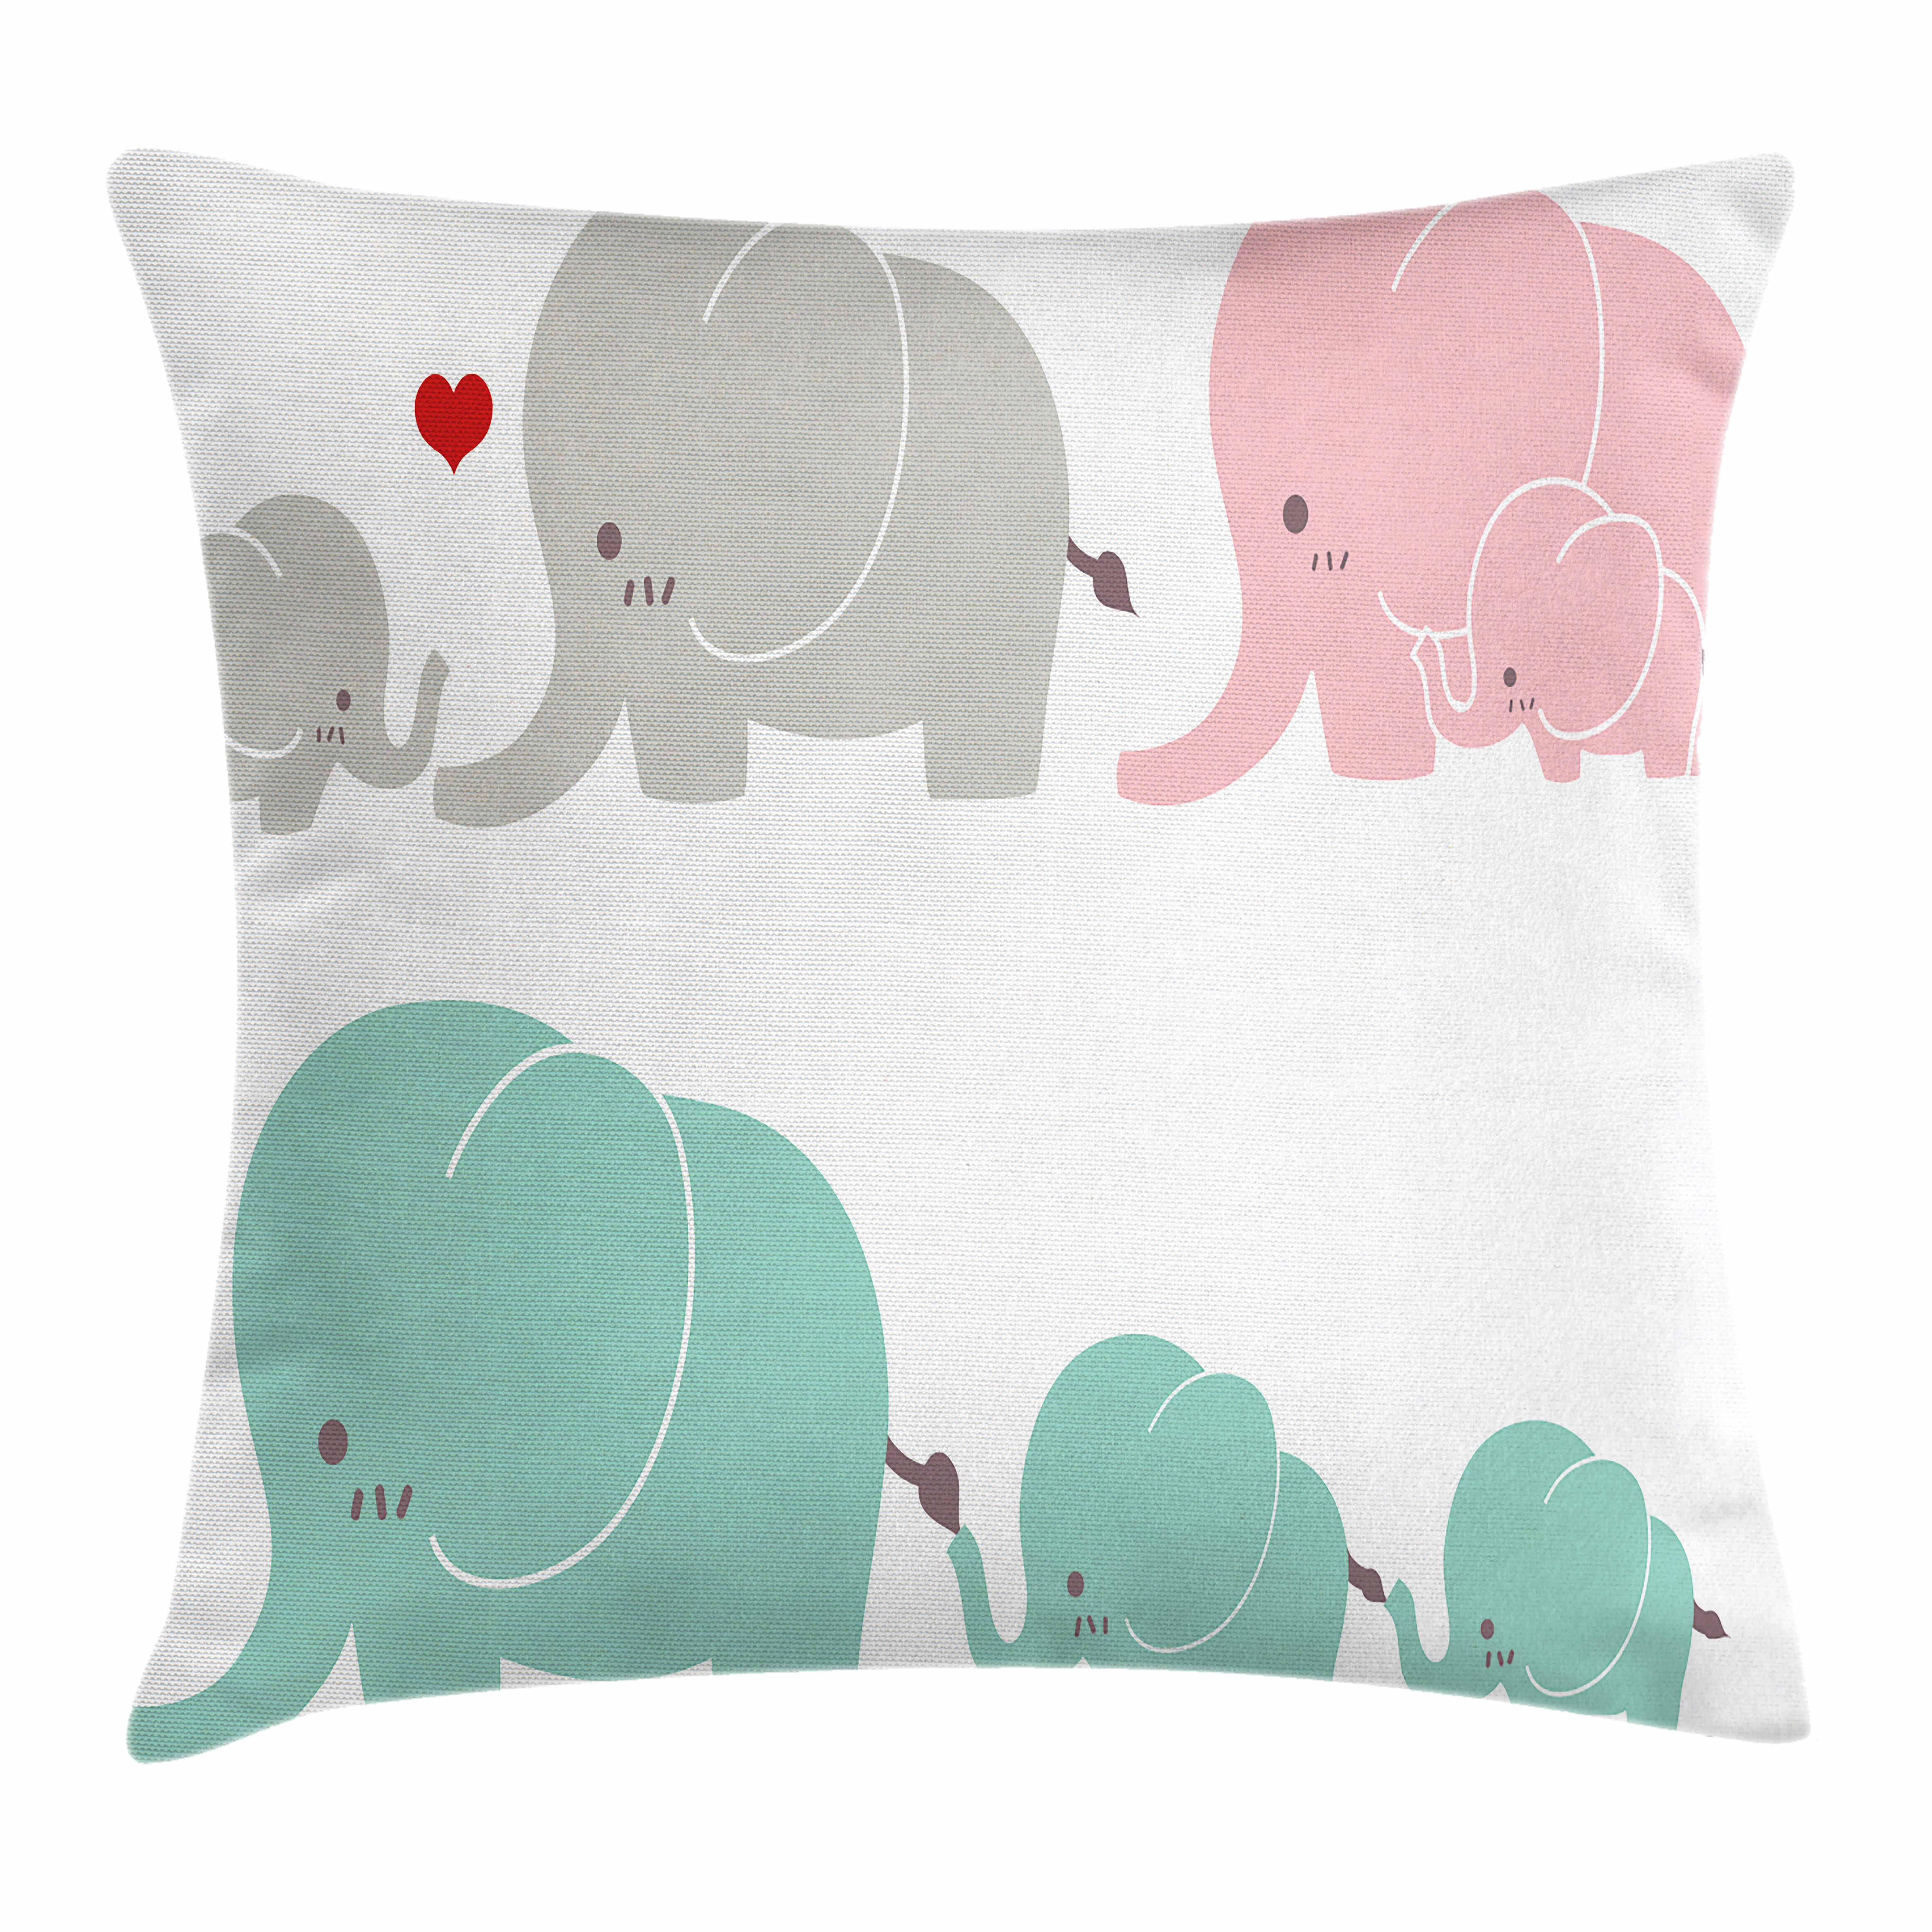 Nursery Throw Pillow Cushion Cover, Family Love Theme Cute Sweet Elephants Mother's Day Theme Baby Children, Decorative Square Accent Pillow Case, 18 X 18 Inches, Seafoam Pale Pink Gray, by Ambesonne